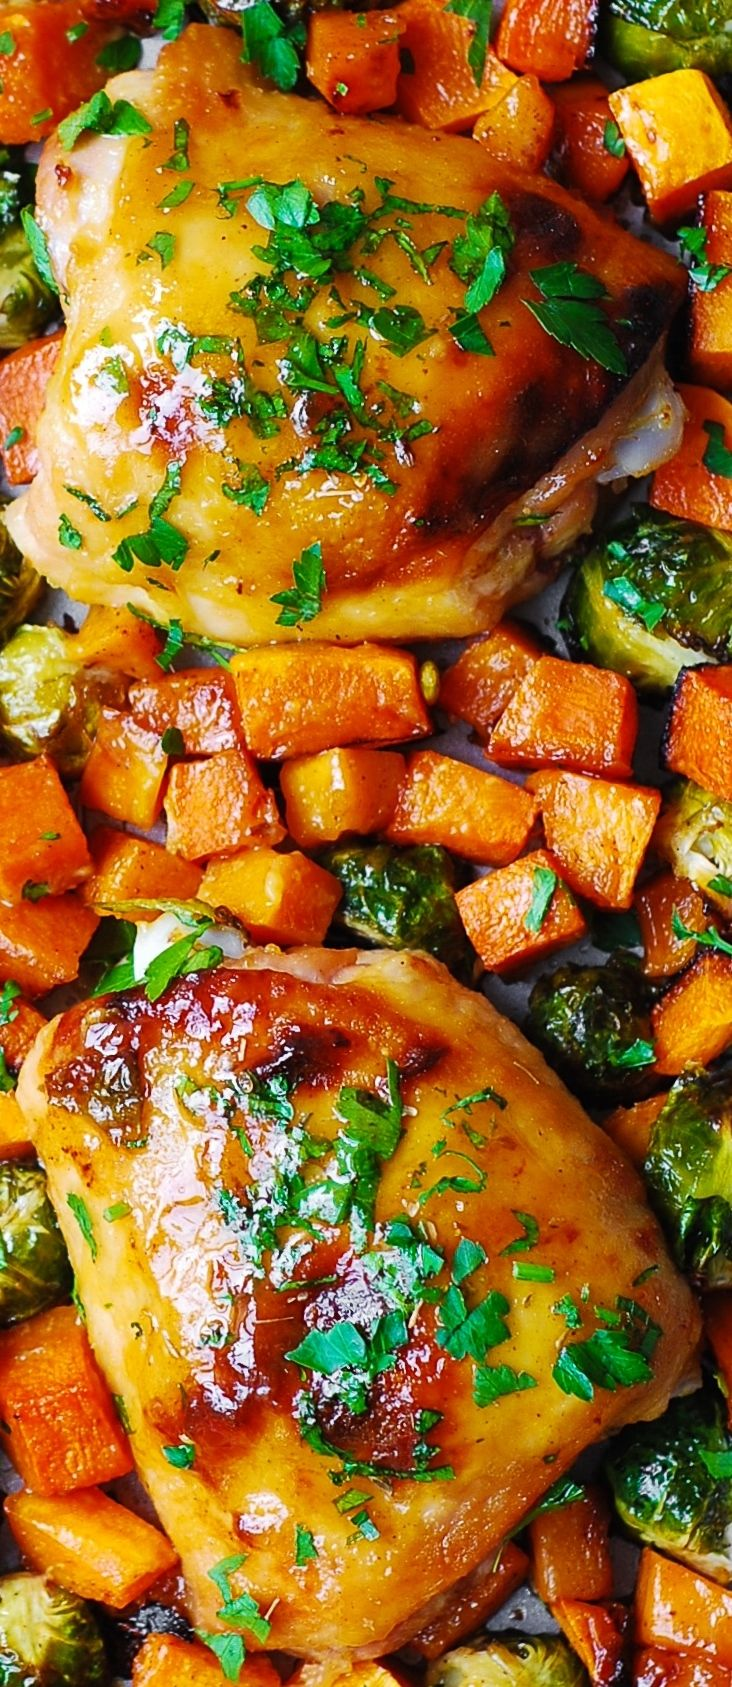 One-Pan Maple-Dijon Chicken with Roasted Butternut Squash and Brussels Sprouts - a perfect Autumn/Winter dinner!